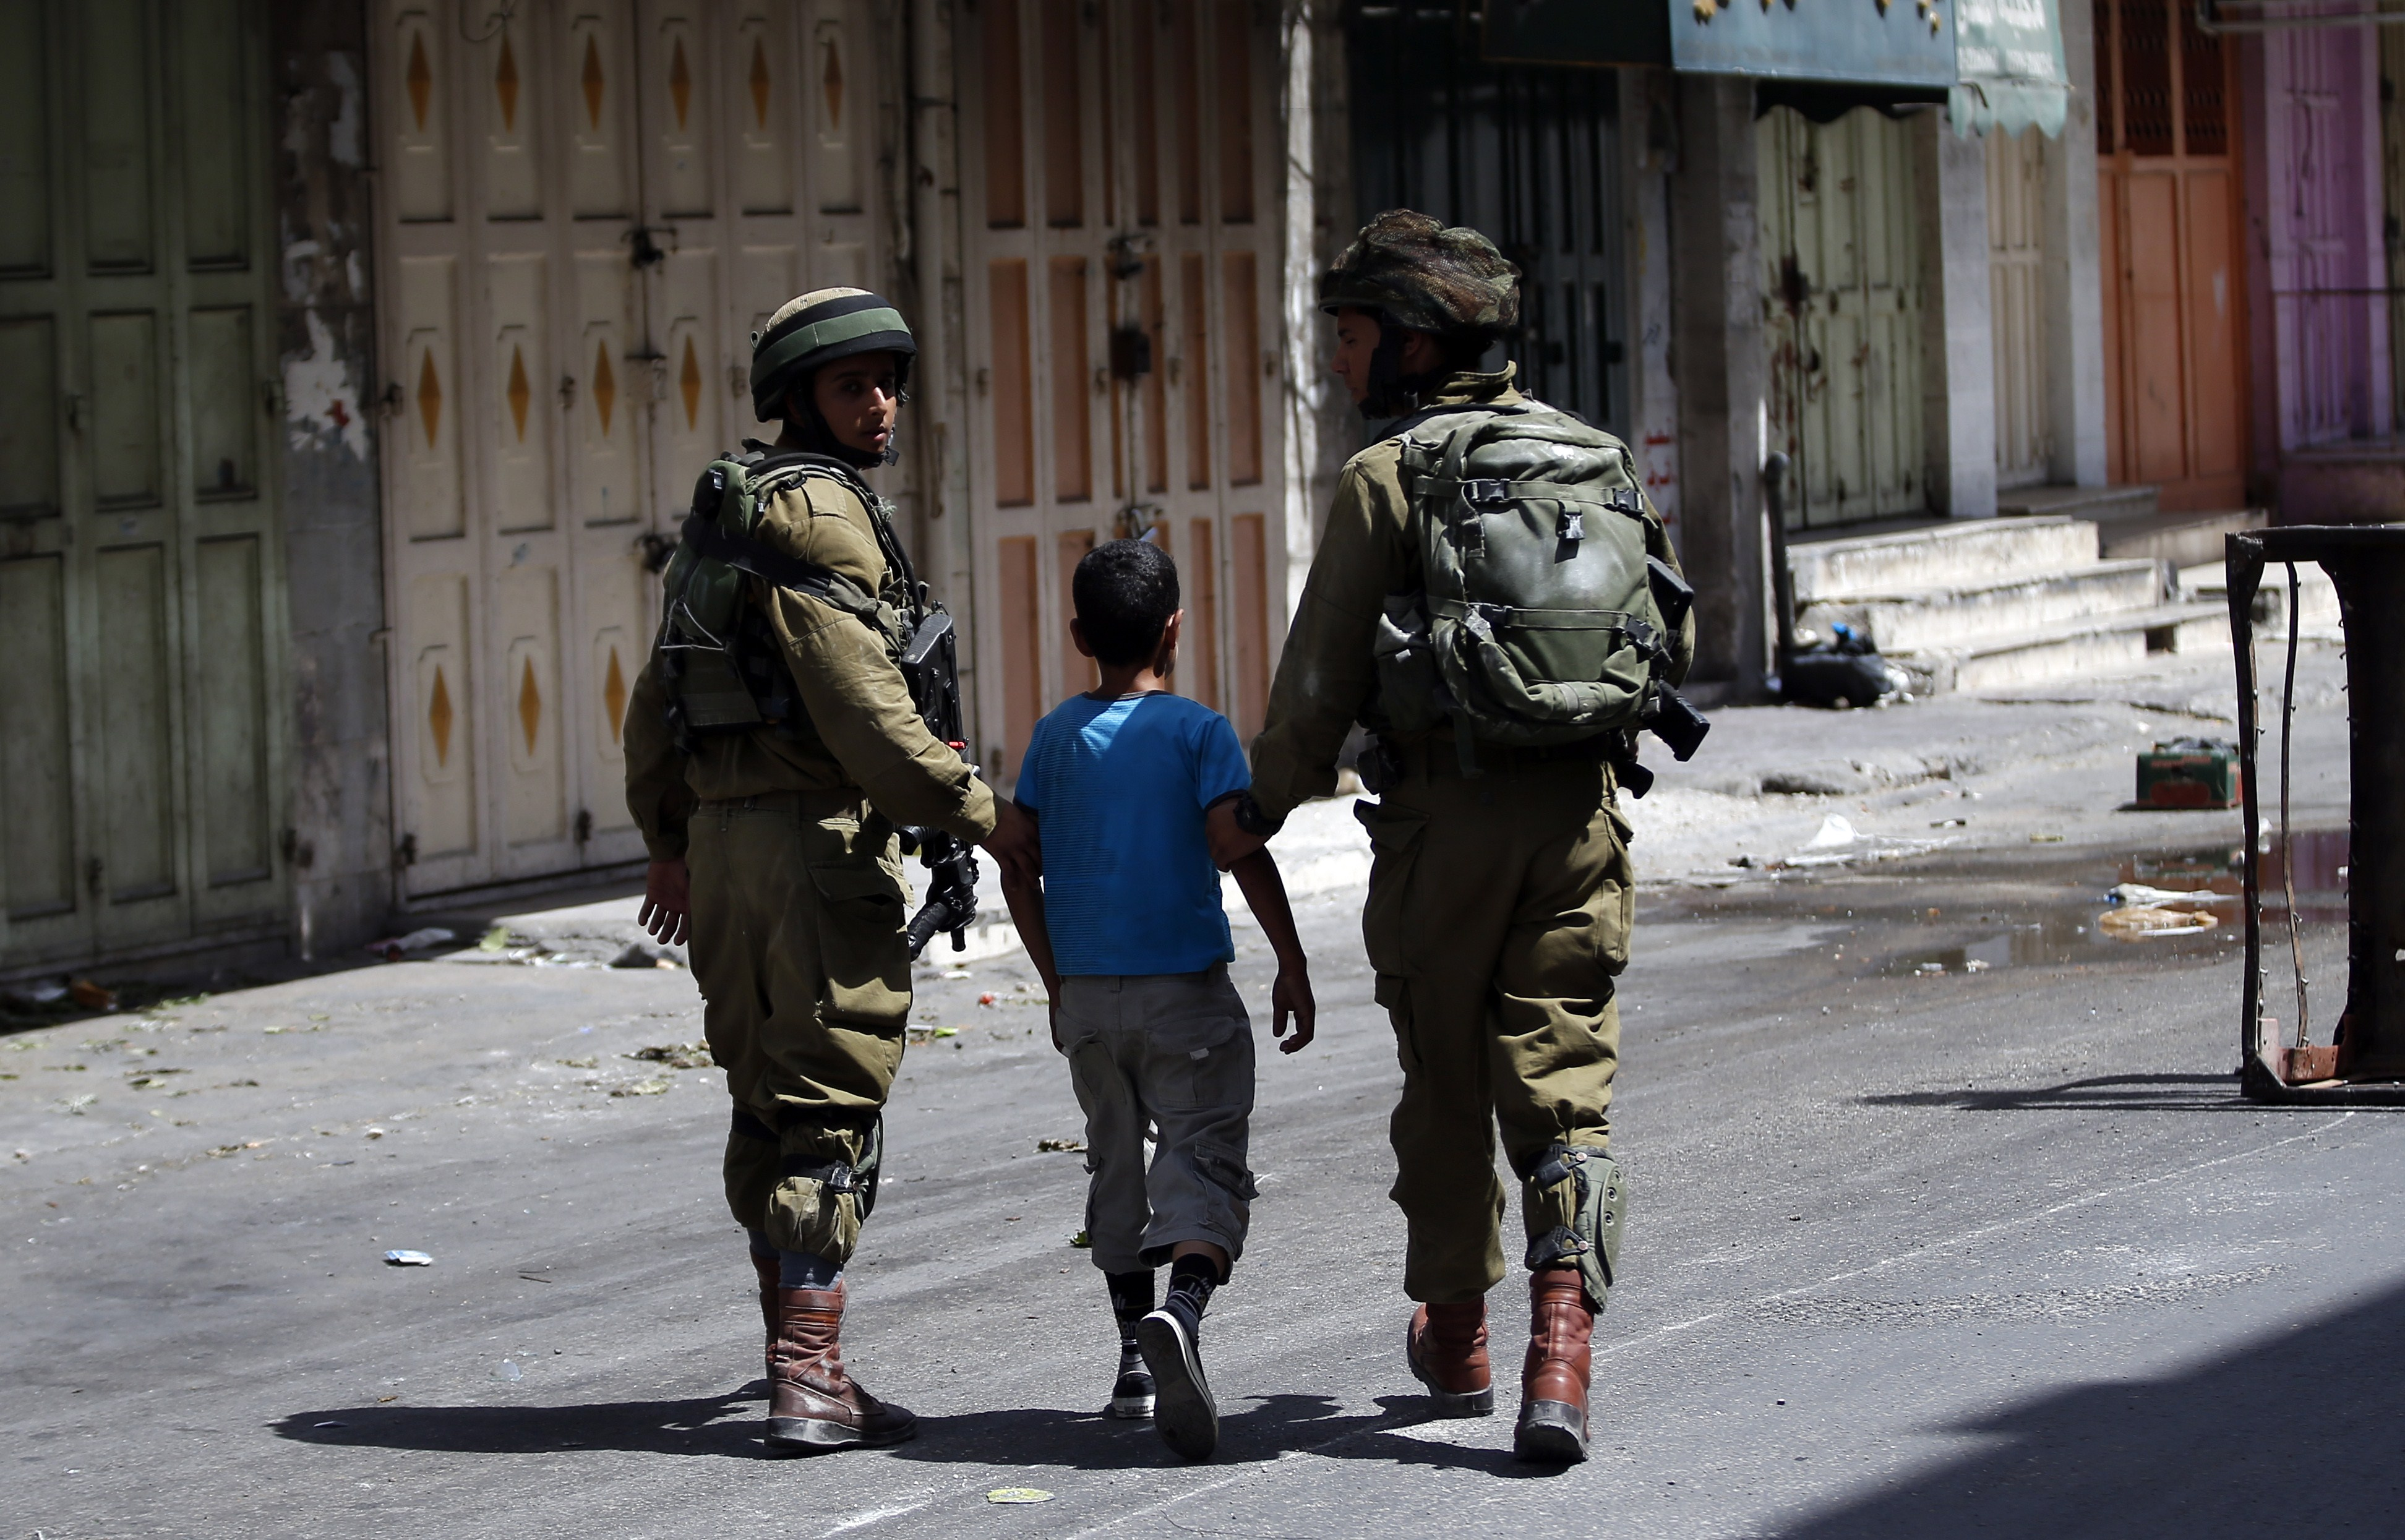 Israeli soldiers arrest a young Palestinian boy following clashes in the center of the West Bank town of Hebron, on June 20, 2014.